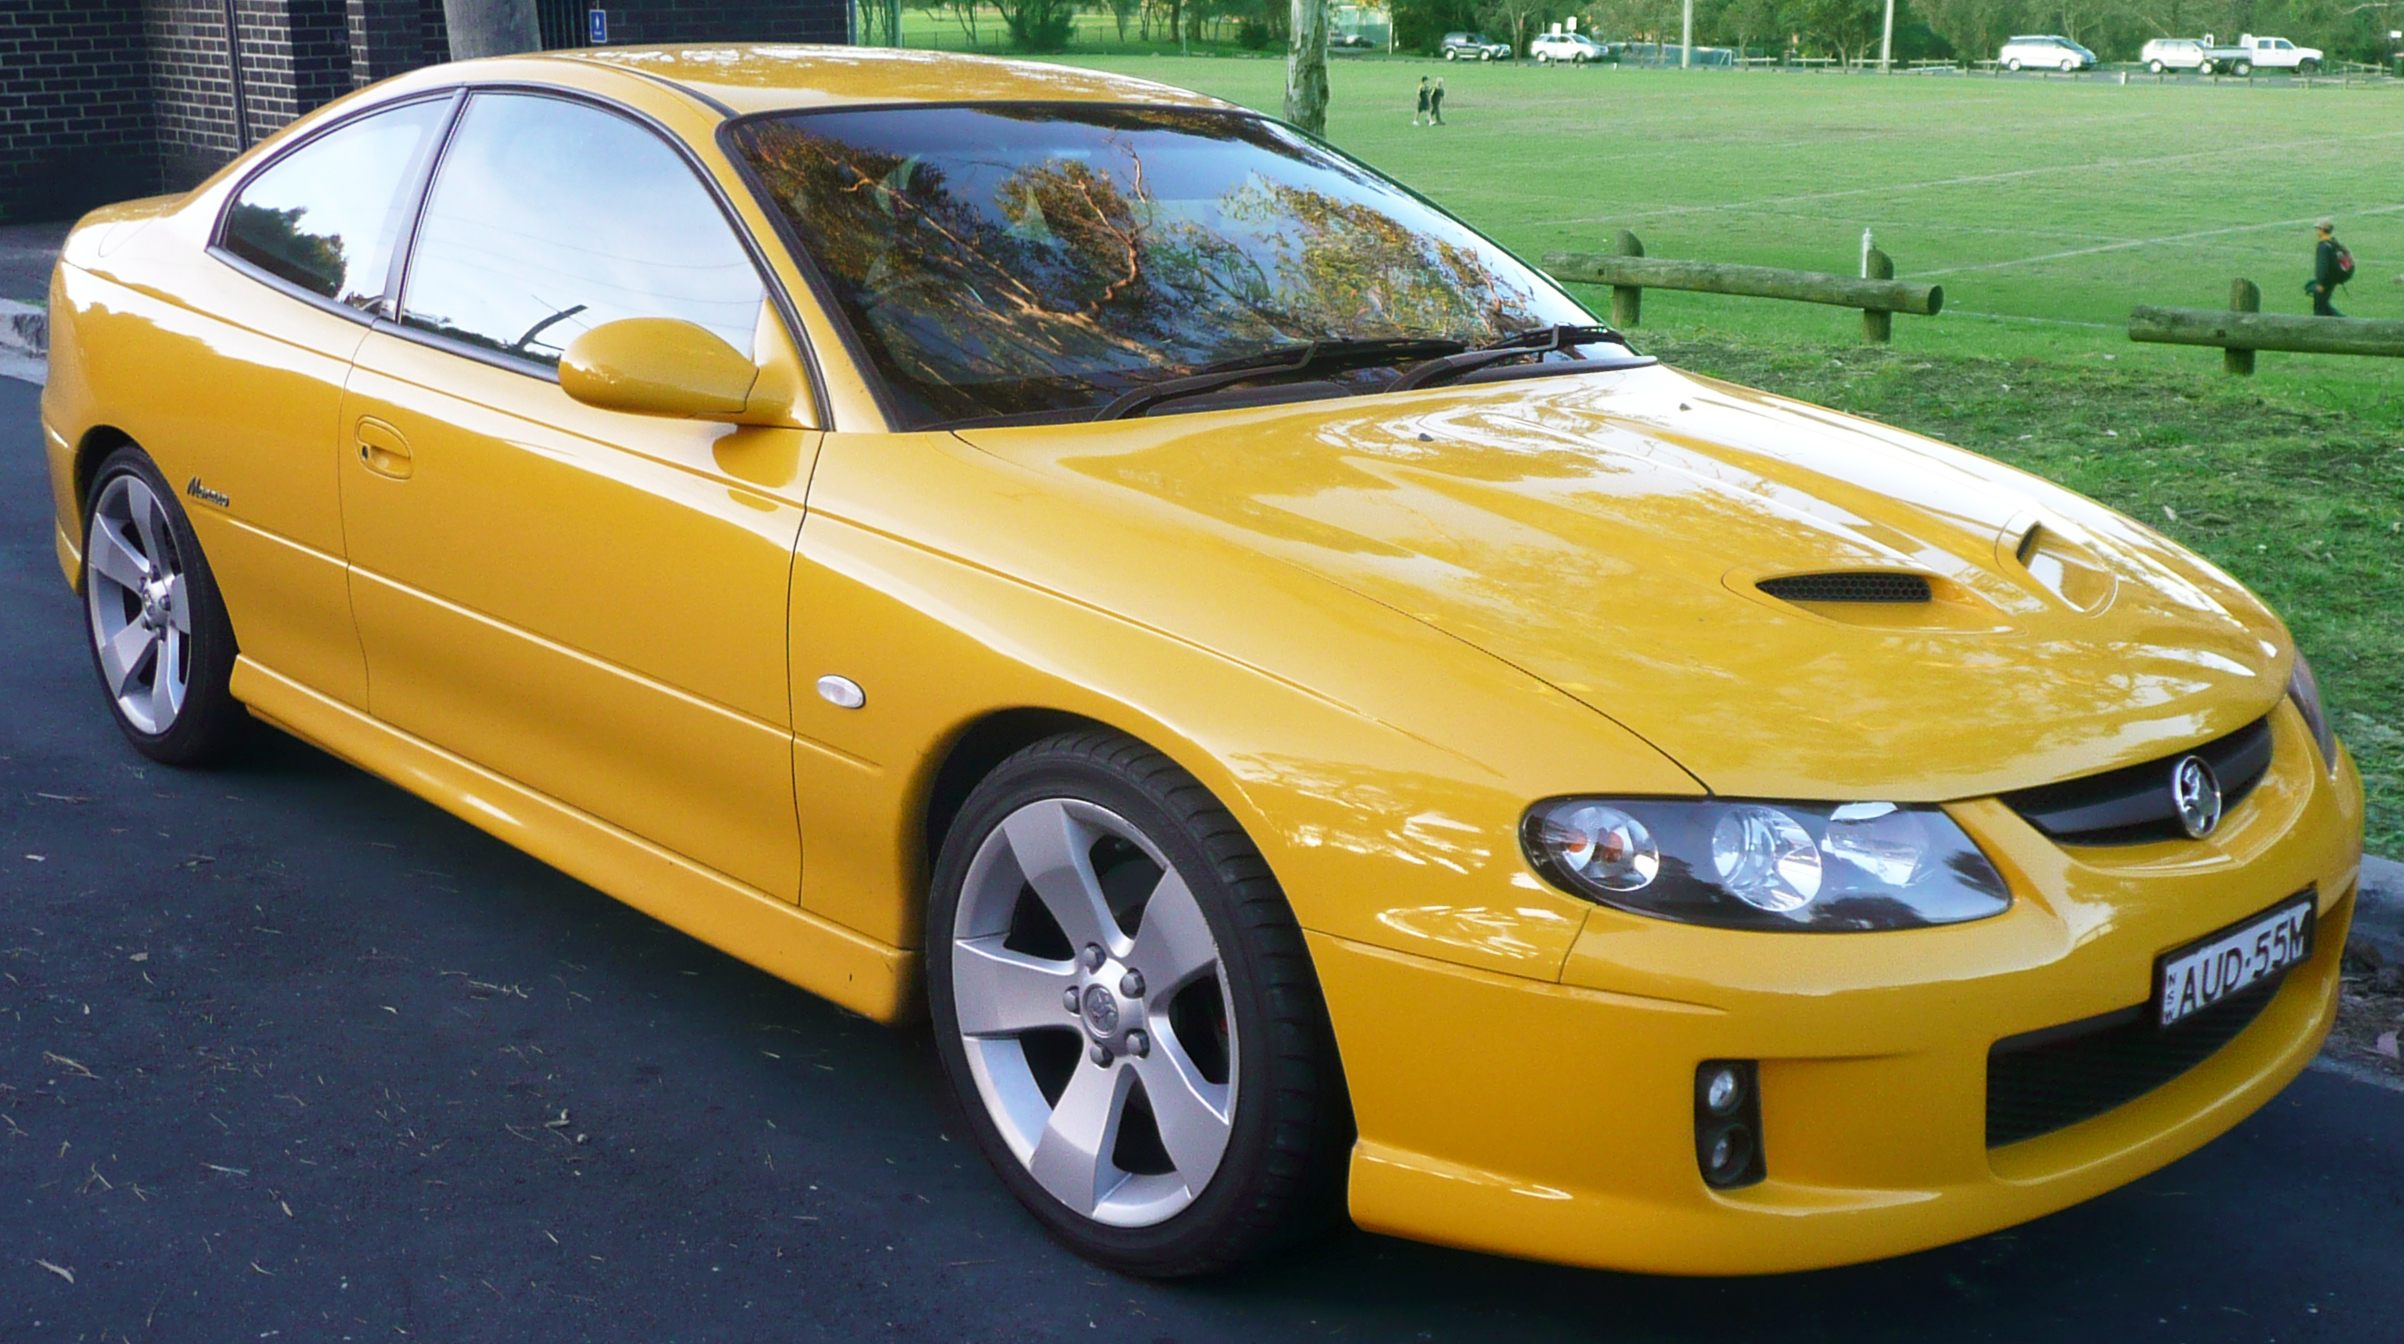 holden monaro wallpaper #1